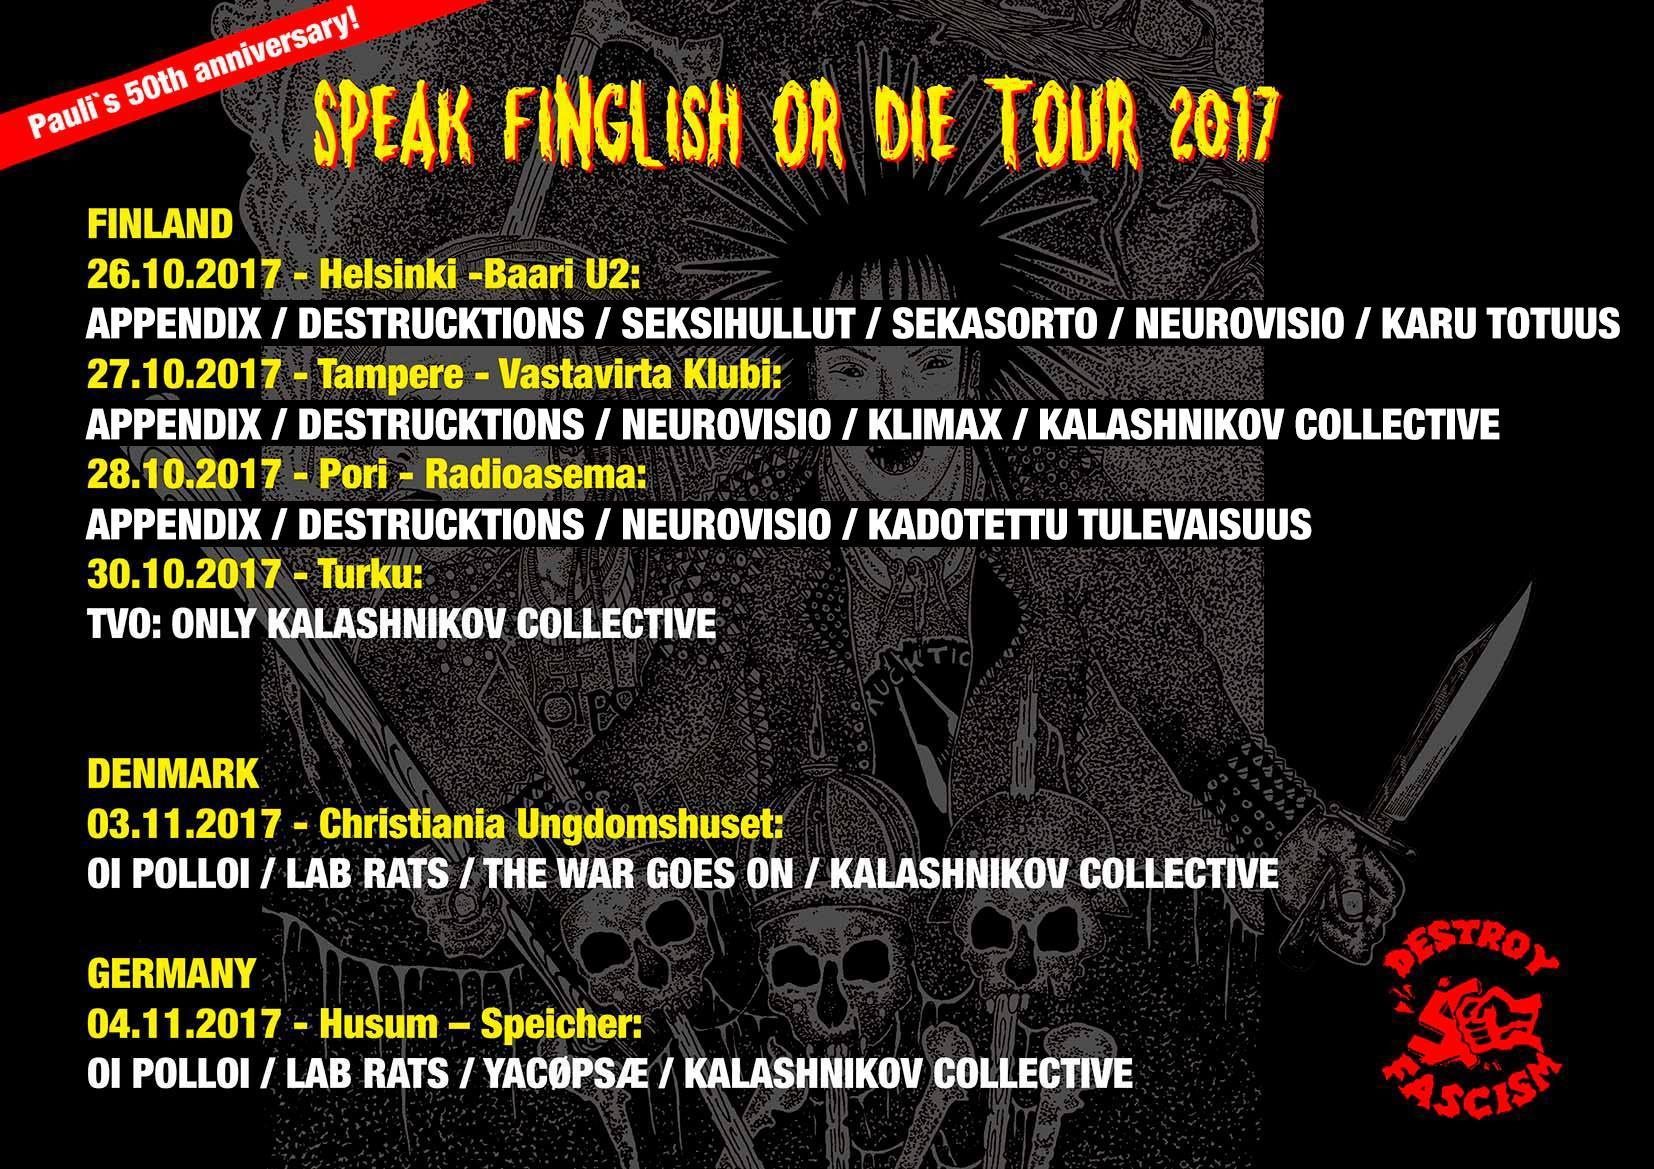 Speak finglish or die tour 2017